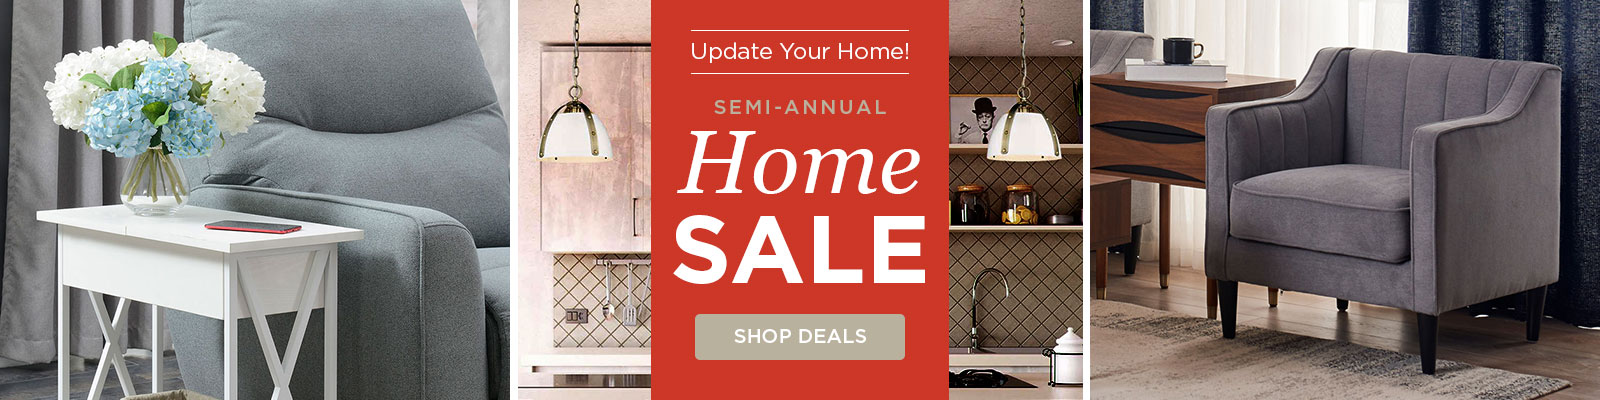 Semi Annual Home Sale